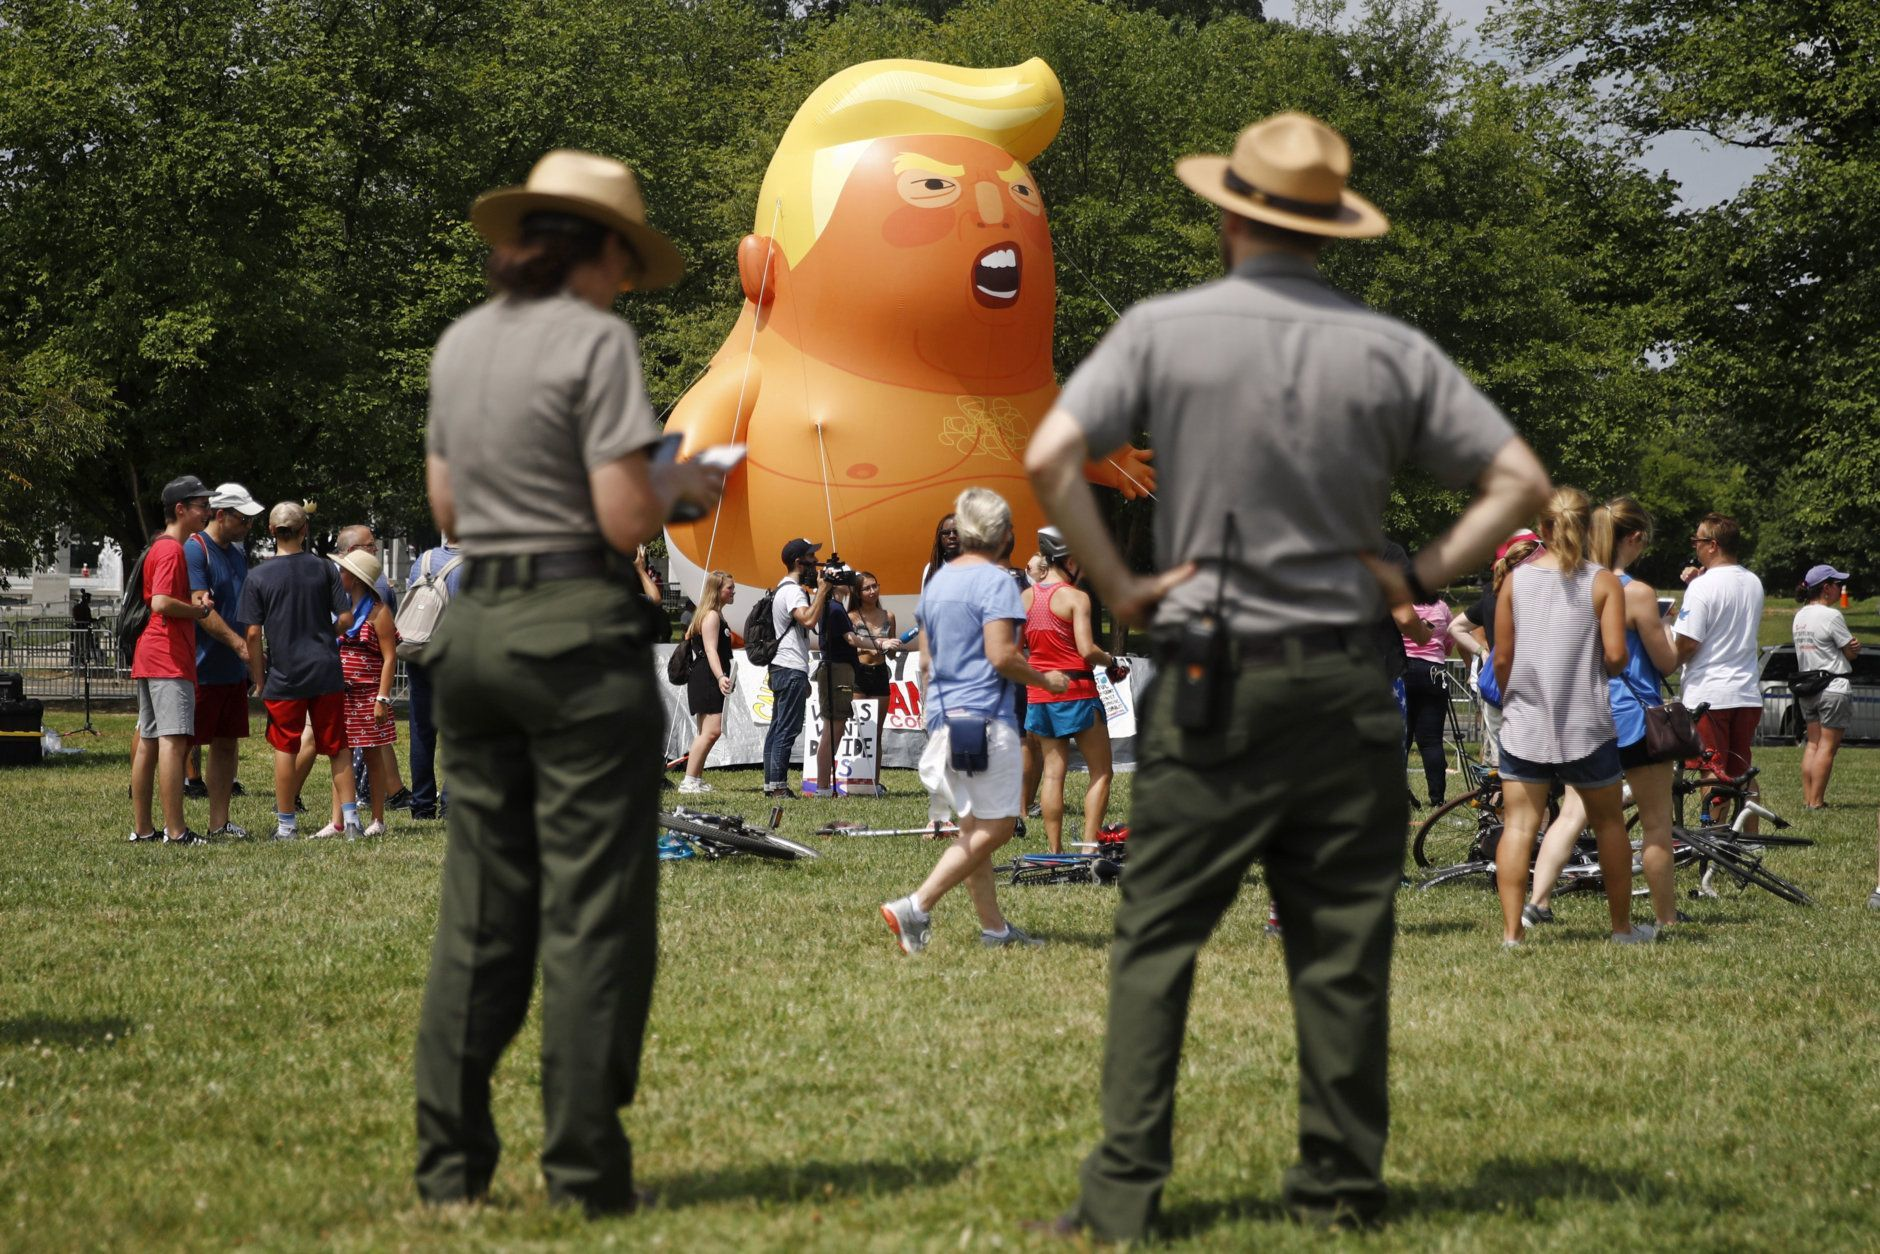 National Park Service rangers view a Baby Trump balloon before Independence Day celebrations, Thursday, July 4, 2019, on the National Mall in Washington. (AP Photo/Patrick Semansky)